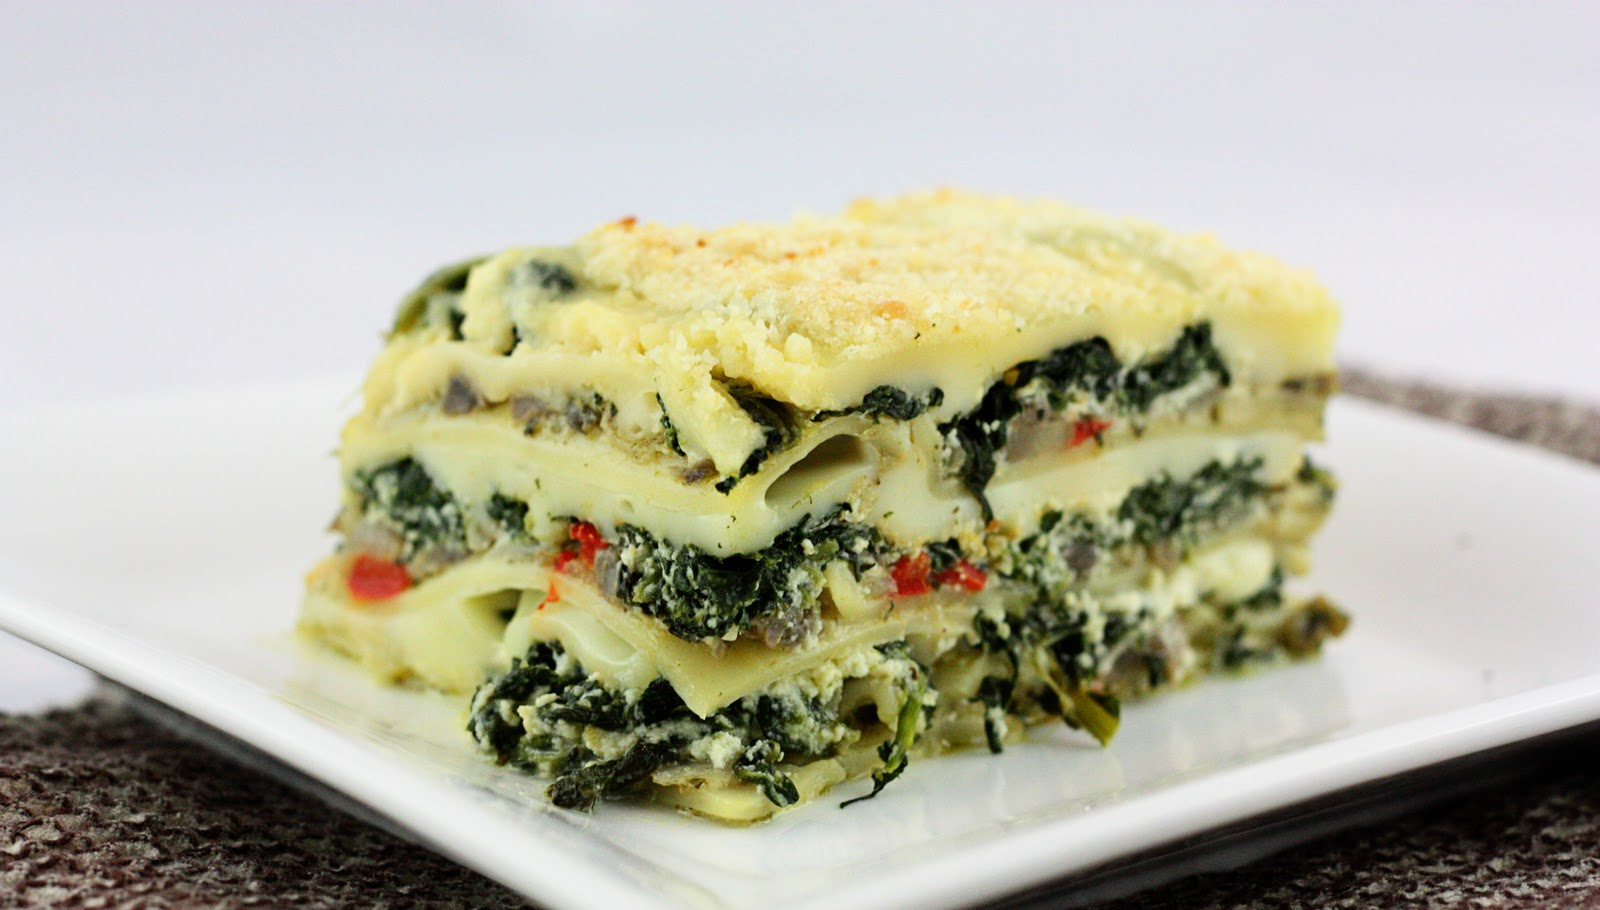 Spinach, Mushroom & Pesto Lasagna From: The Other Side Of Fifty